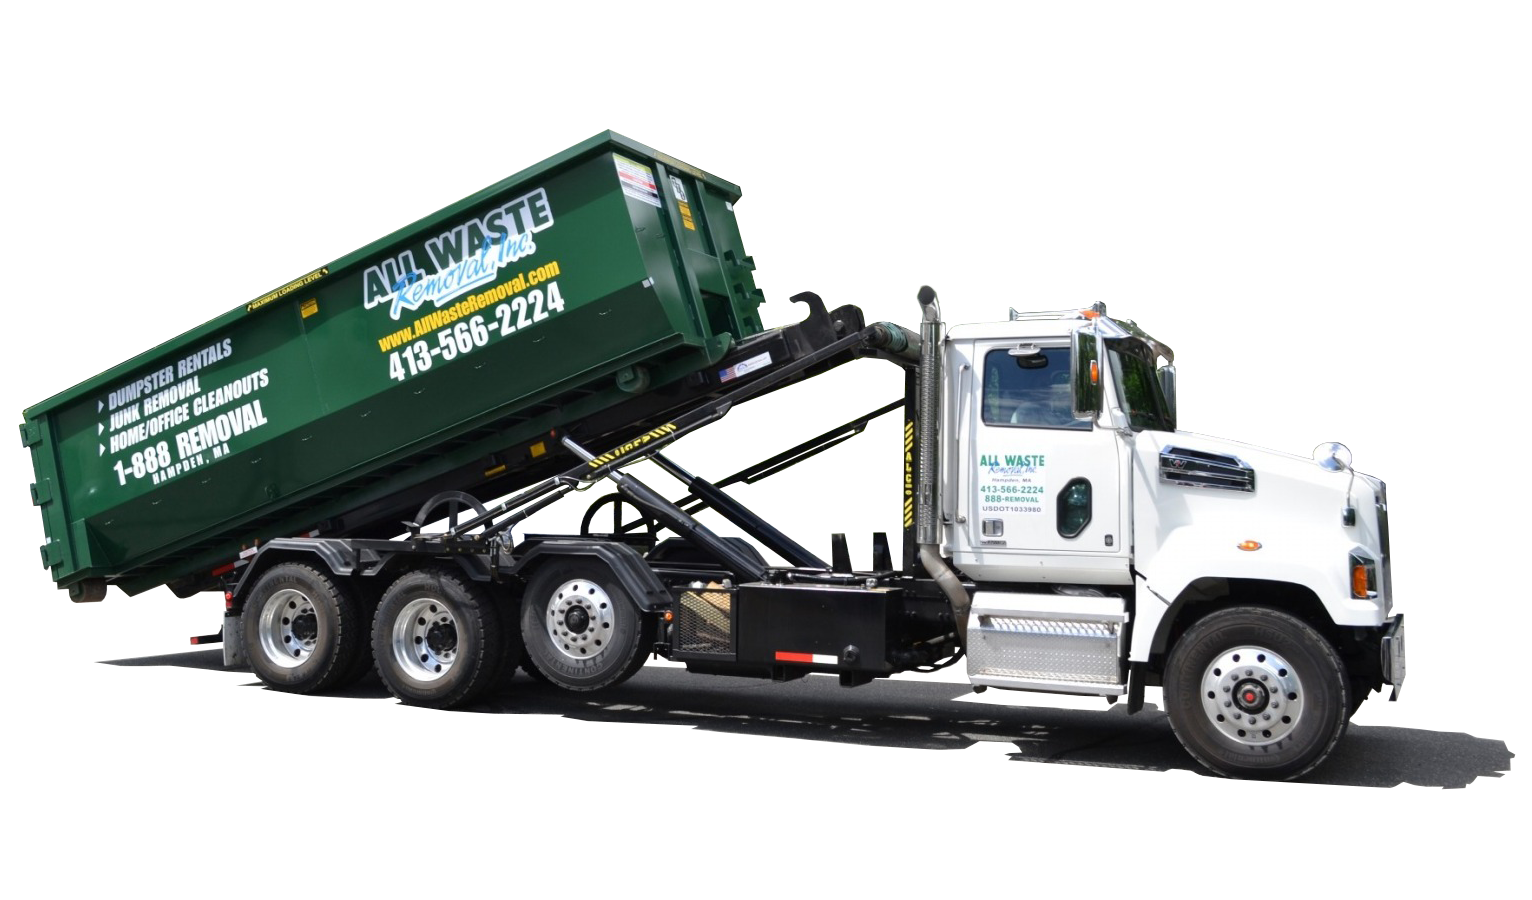 All Waste Removal, Dumpster, Dumpster Rental, roll off dumpster, Western MA, Springfield MA, Northern CT